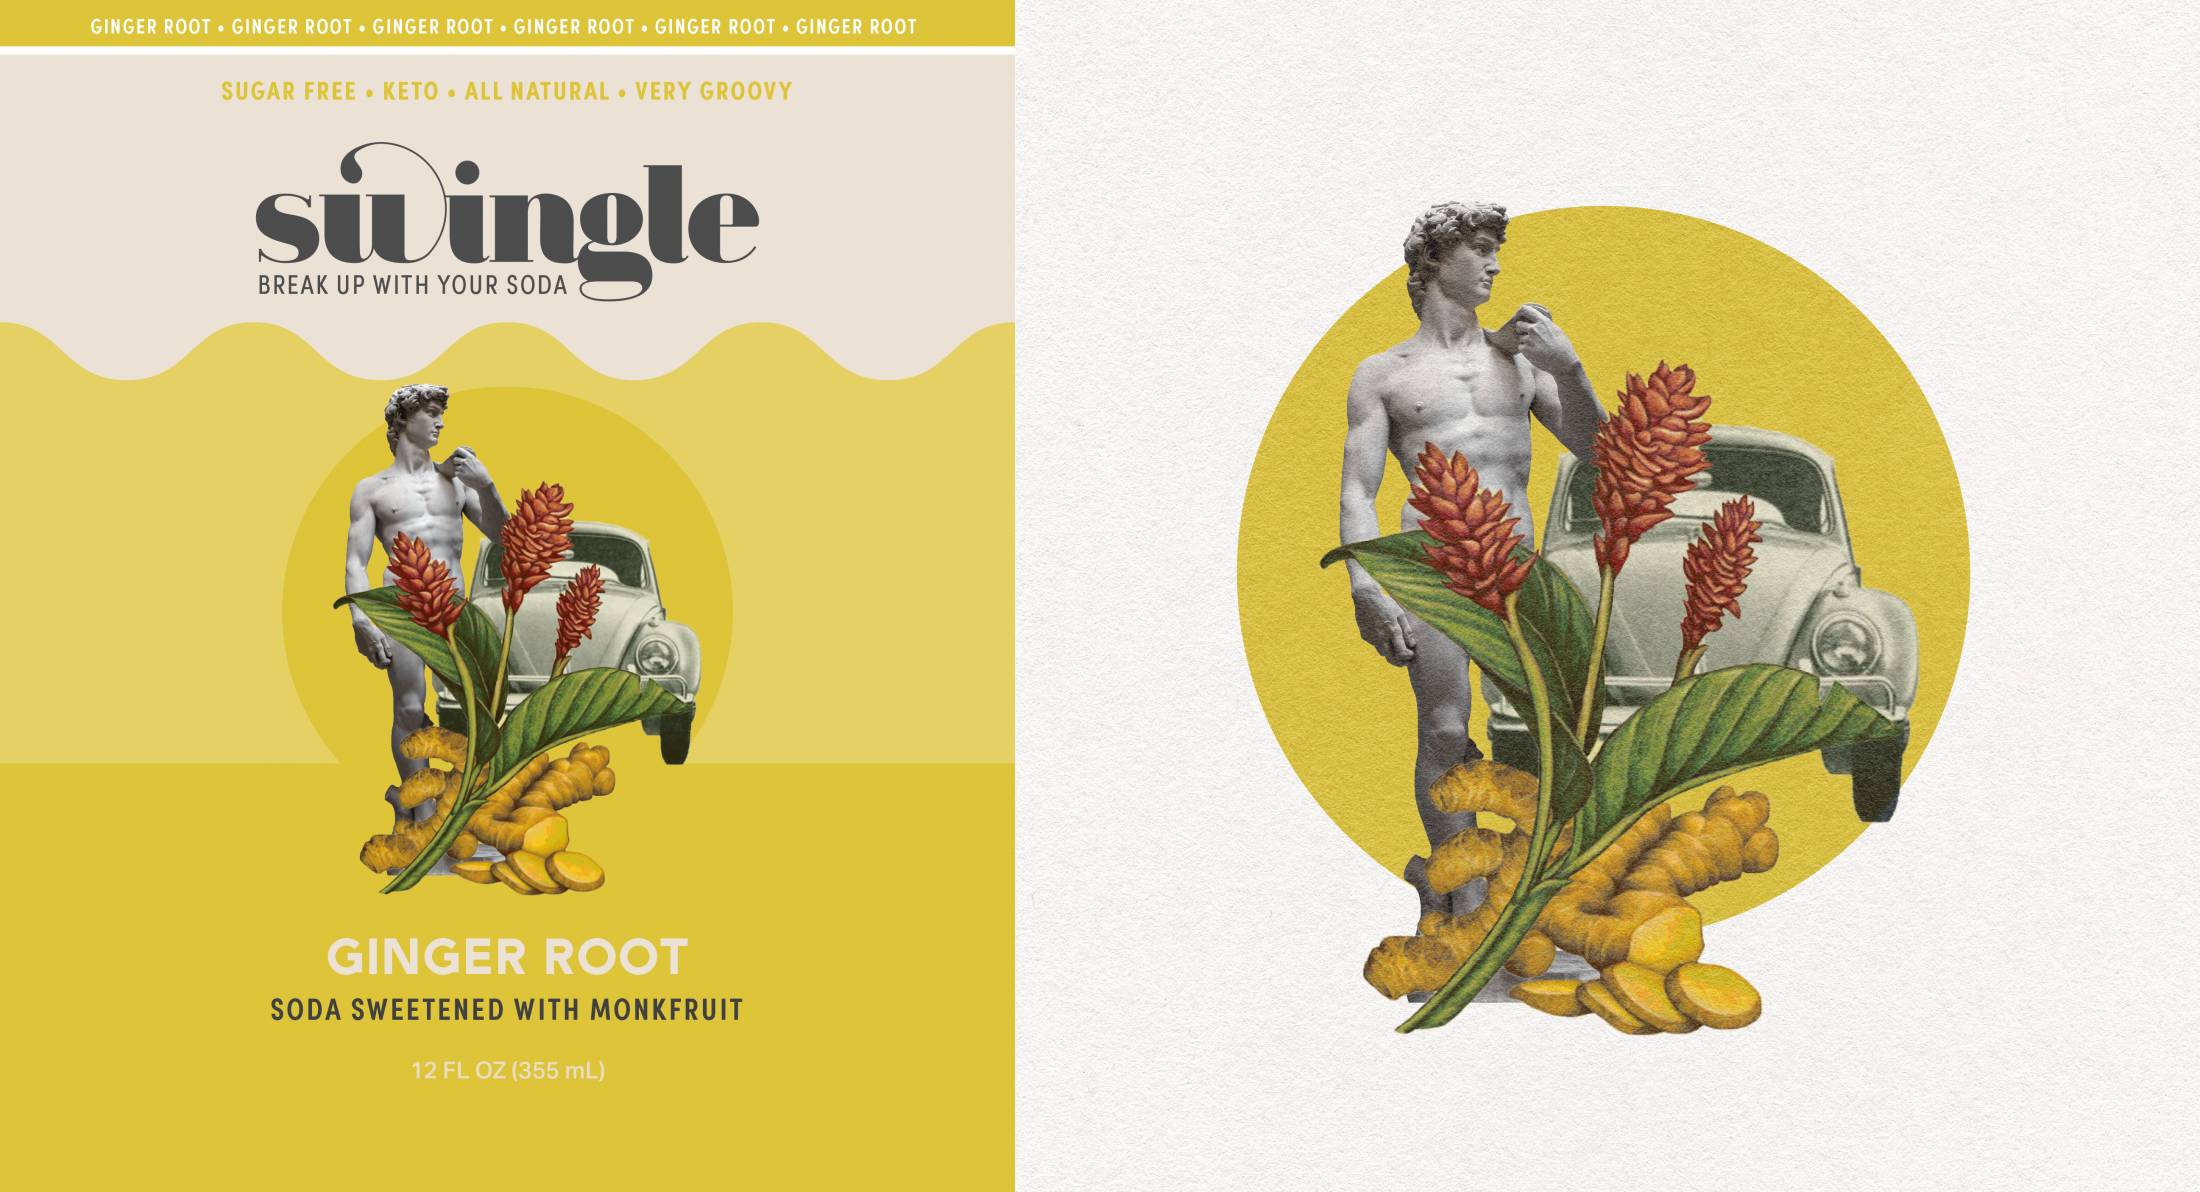 Label Art: A collage of David, ginger plant, VW beetle, and a ginger colored circle.